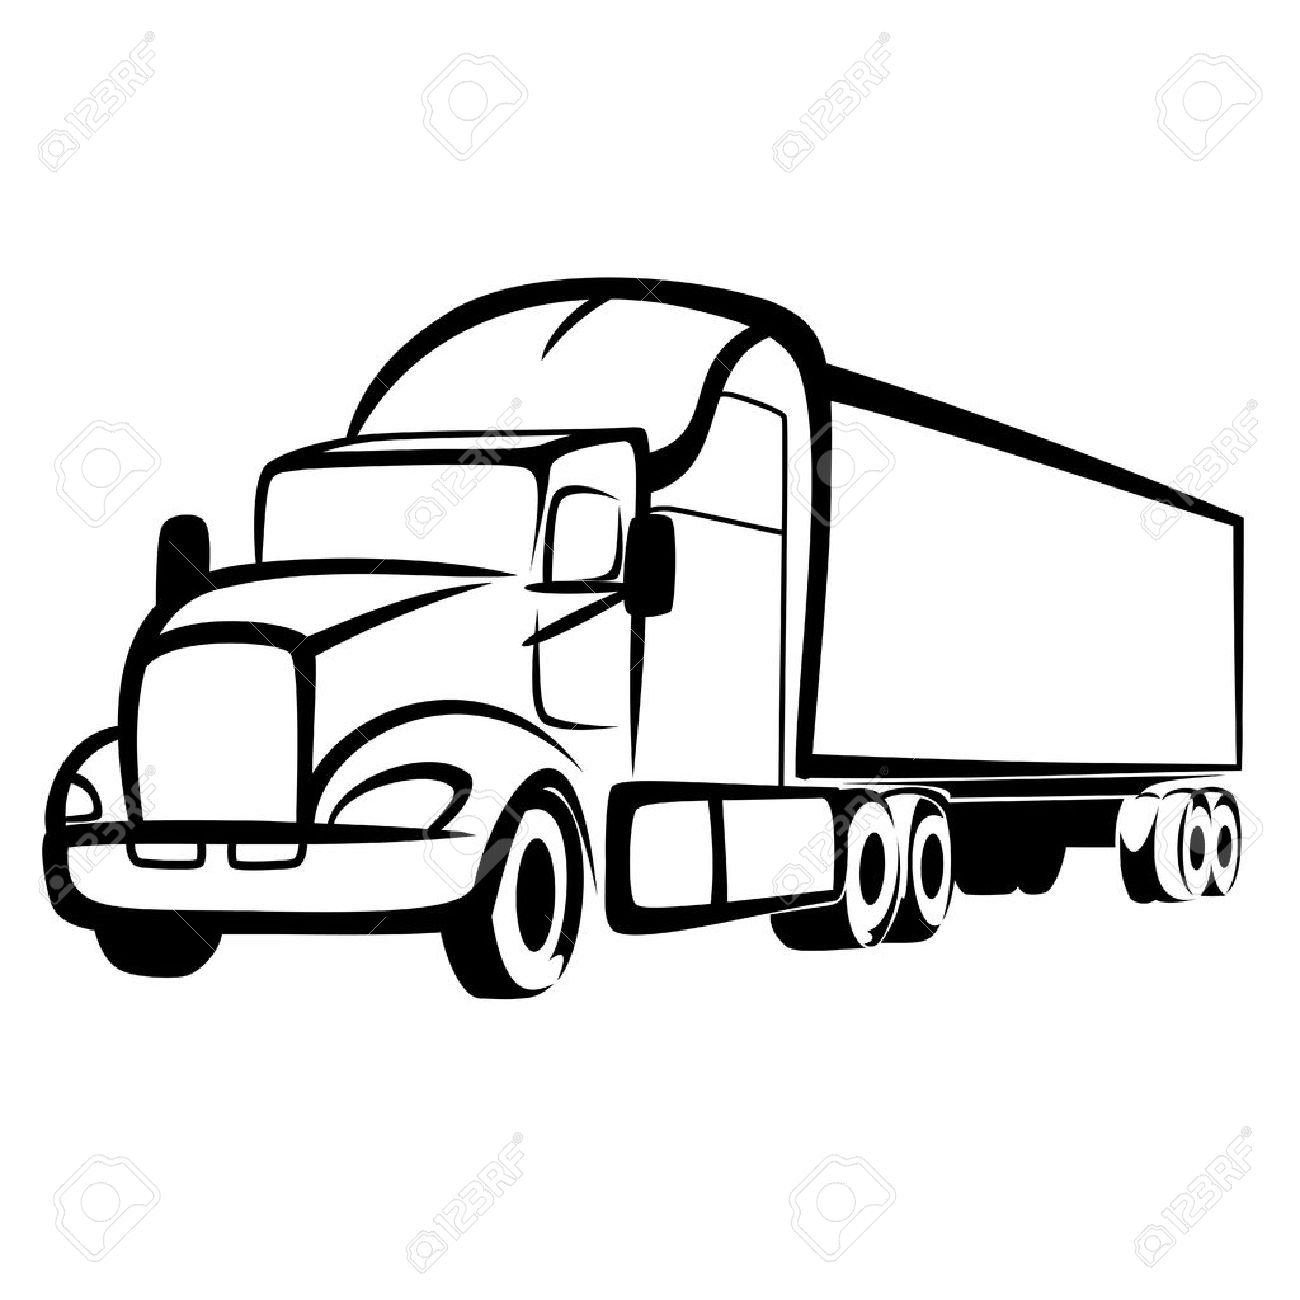 5 430 semi truck stock illustrations cliparts and royalty free semi rh 123rf com semi truck clip art for job postings semi truck clipart free